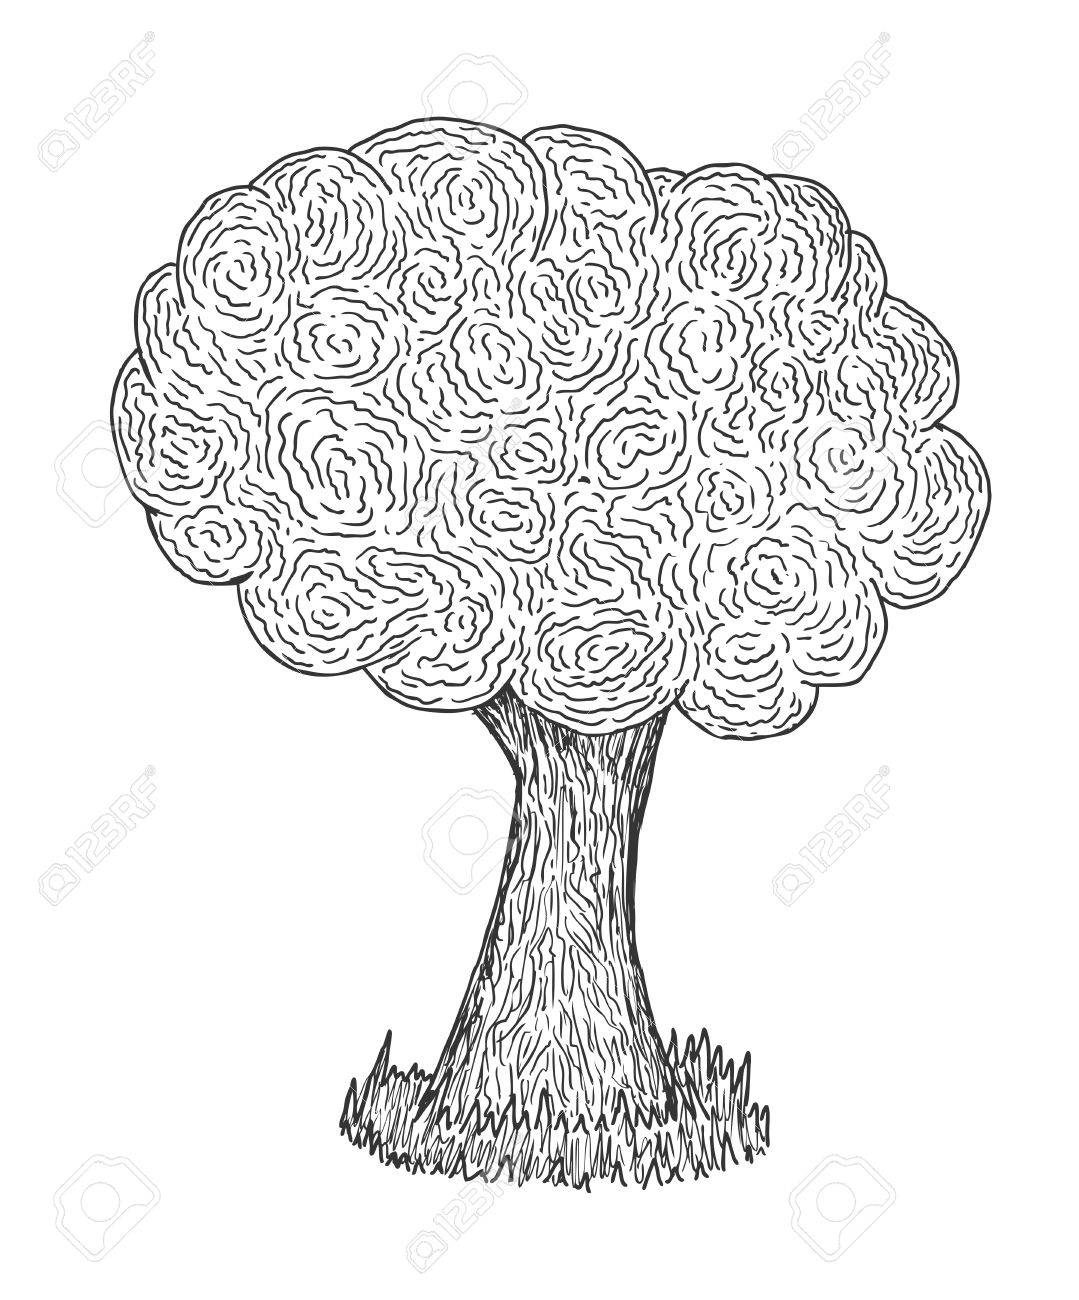 Hand drawn and sketched tree Stock Vector - 11656182